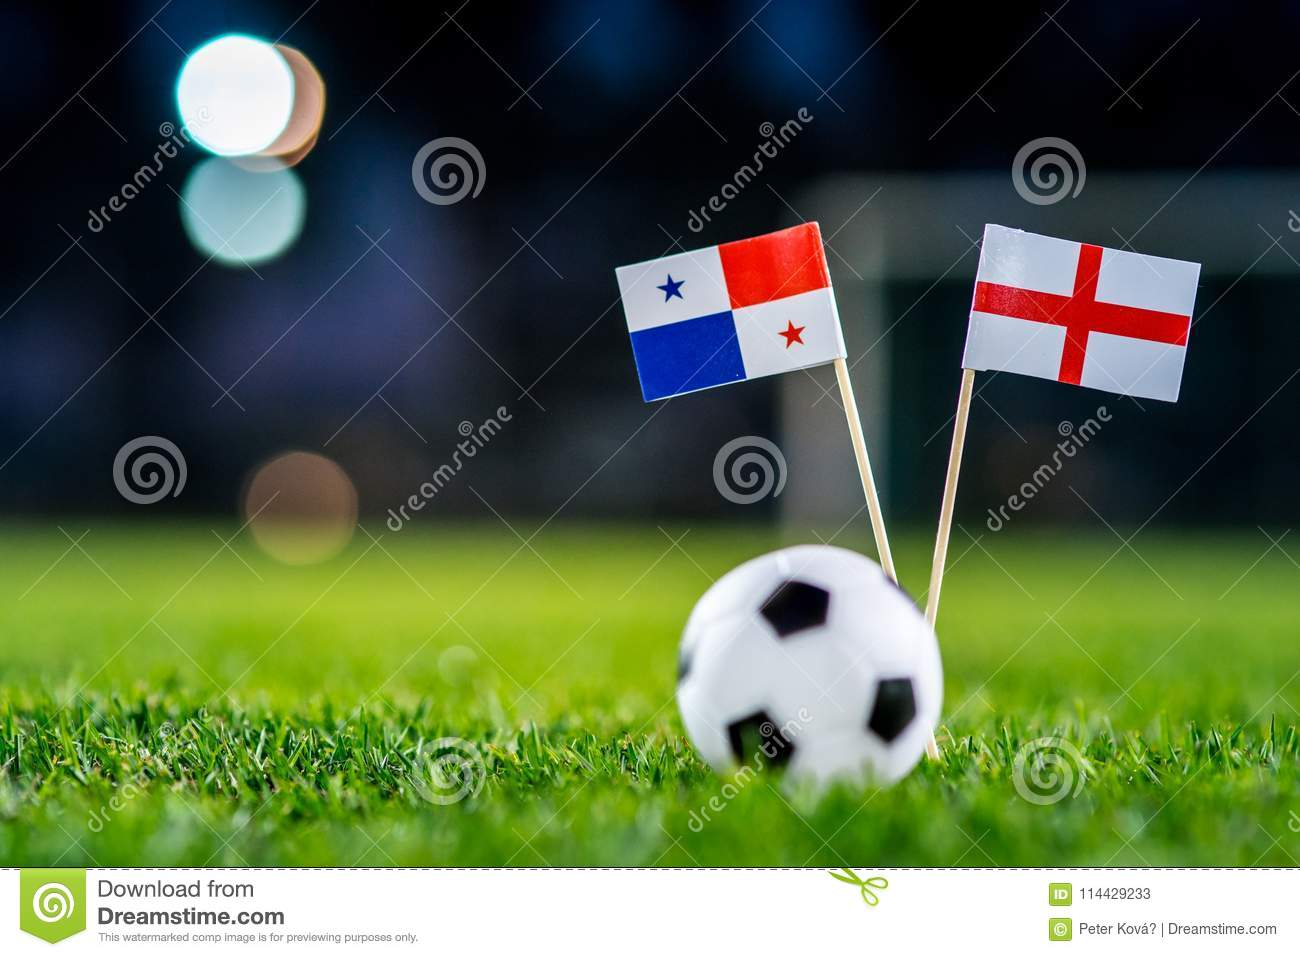 England - Panama, Group G, Sunday, 24. June, Football, World Cup, Russia 2018, National Flags on green grass, white football ball